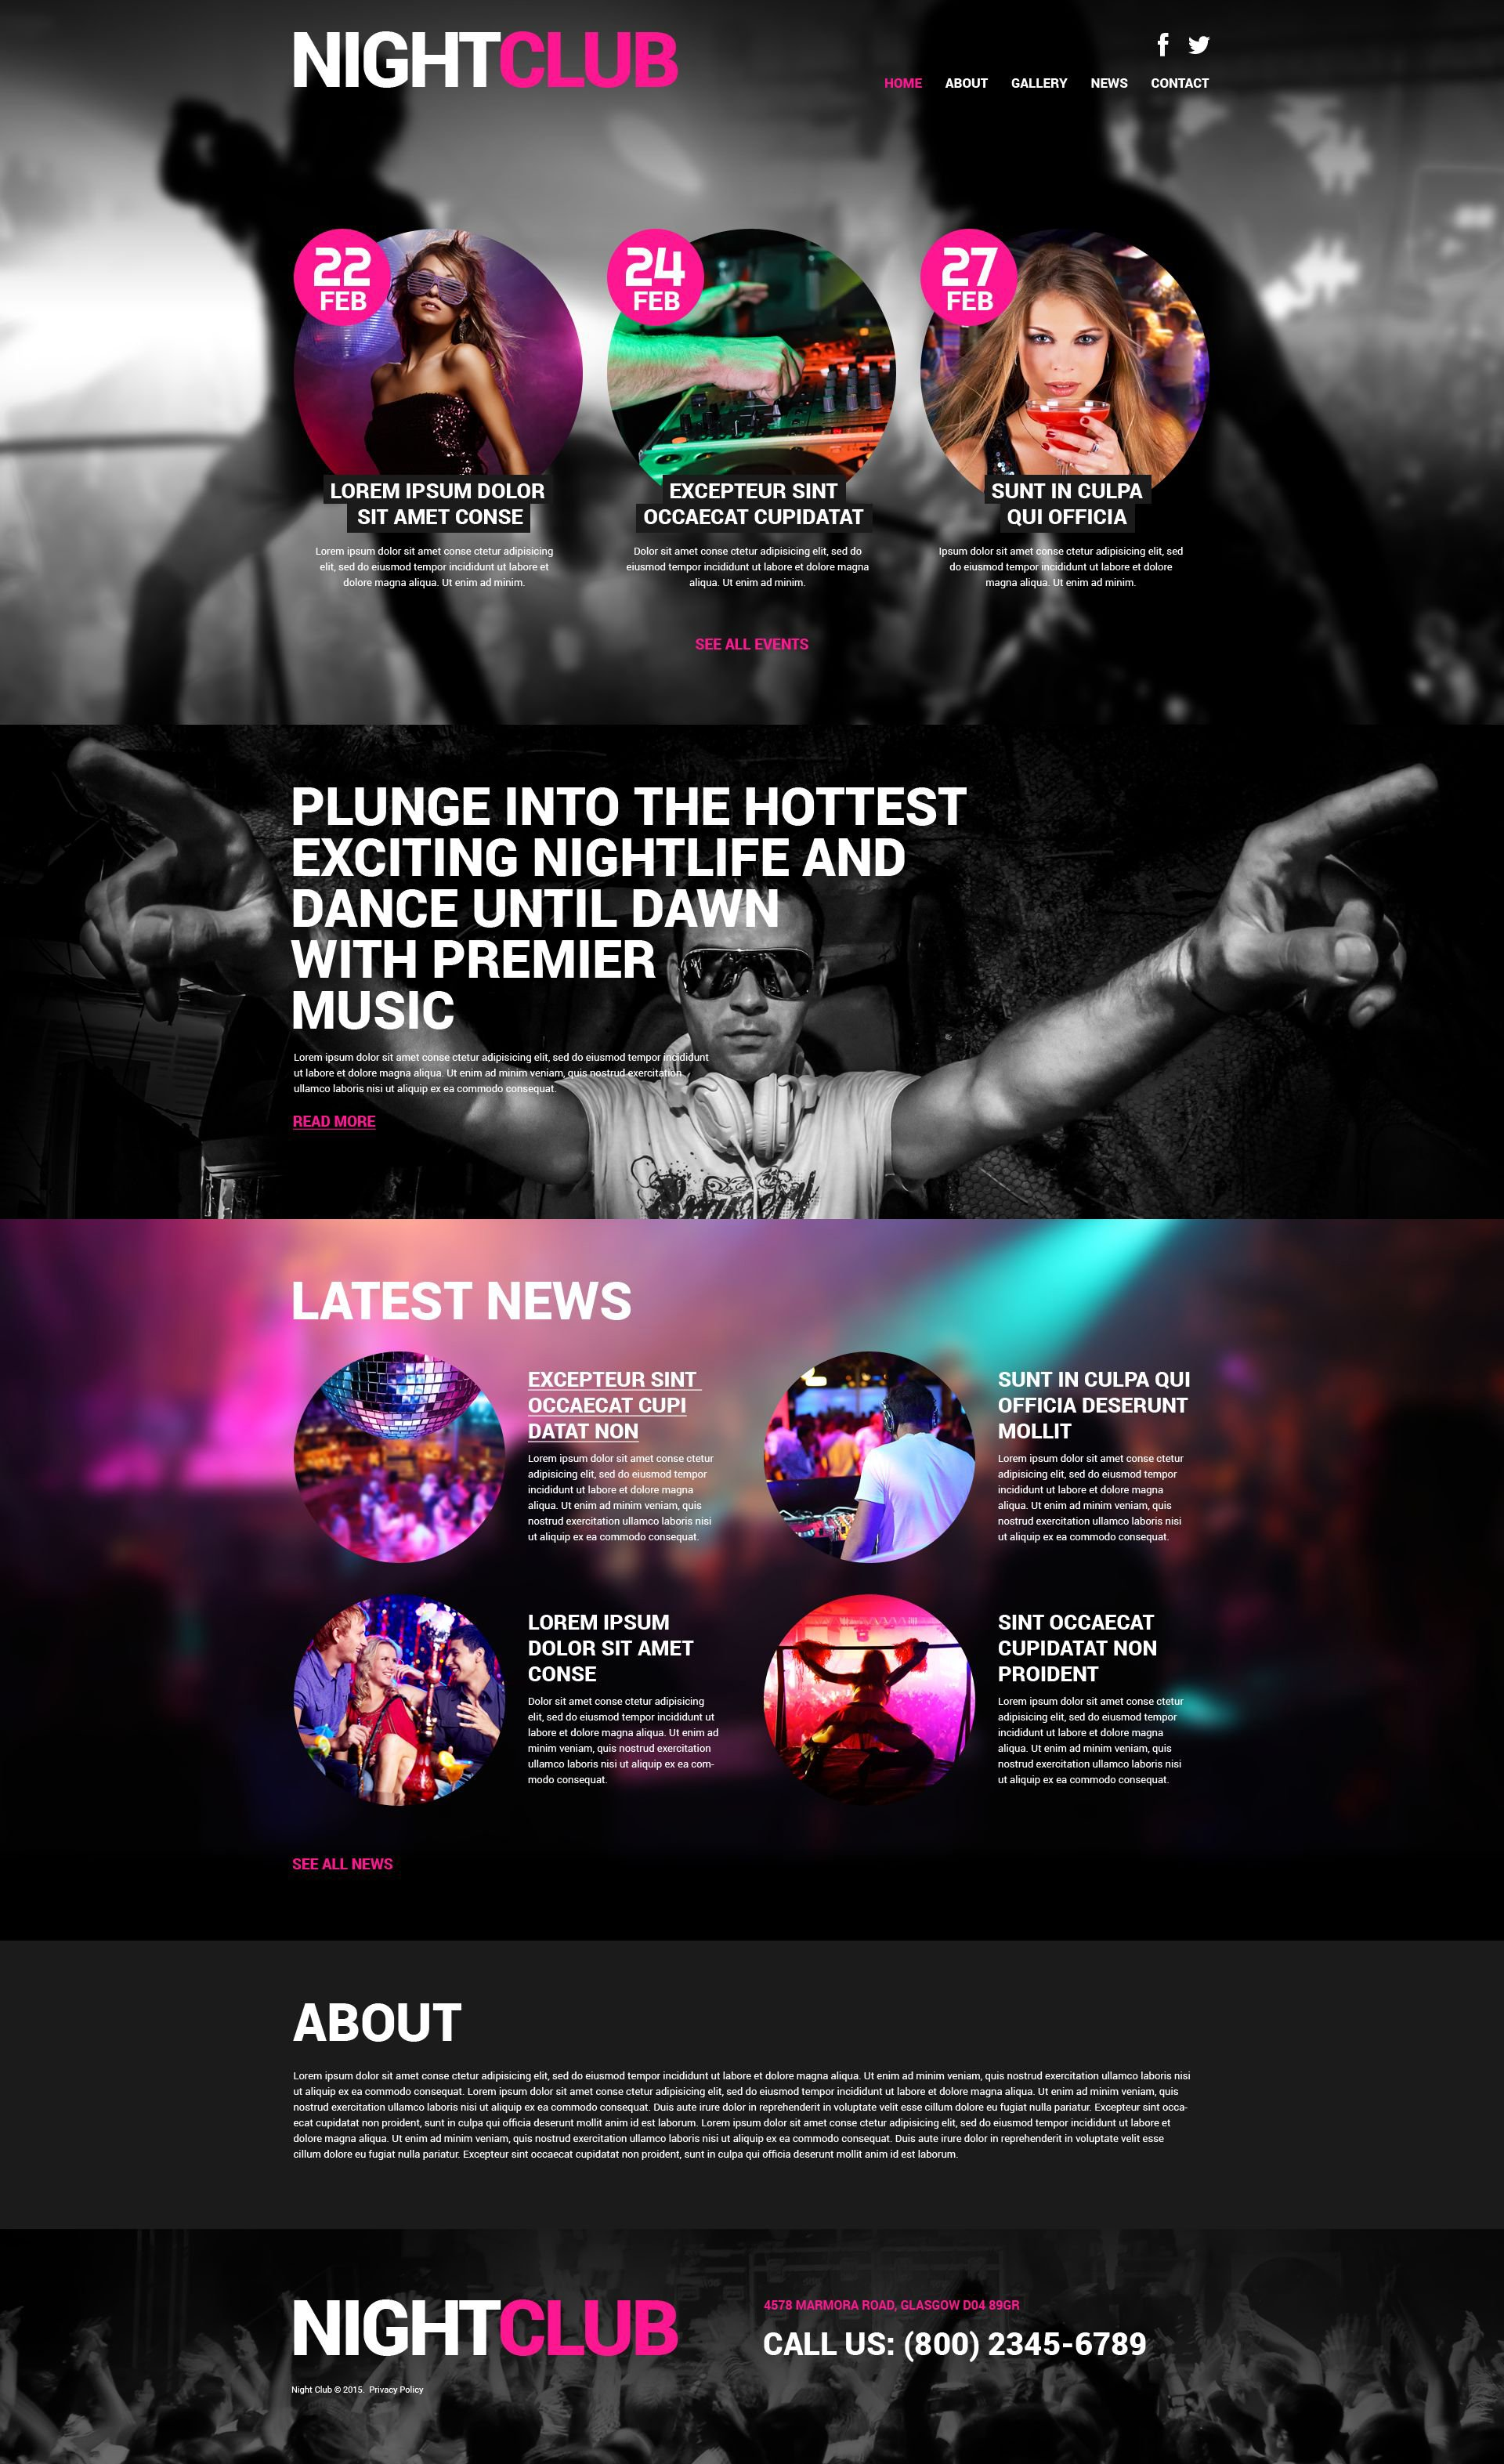 The Night Club WordPress Design 53257, one of the best WordPress themes of its kind (most popular, online casino), also known as night club WordPress template, music WordPress template, dances WordPress template, dancers WordPress template, entertainment WordPress template, joy WordPress template, energy WordPress template, free drinks WordPress template, tickets WordPress template, party WordPress template, deejays WordPress template, dj WordPress template, events WordPress template, beats WordPress template, disks WordPress template, songs WordPress template, tunes WordPress template, rhythms WordPress template, gallery WordPress template, photos WordPress template, pictures WordPress template, guests WordPress template, participants WordPress template, interview WordPress template, stars WordPress template, artists WordPress template, funs WordPress template, booking WordPress template, mob WordPress template, glamour girls WordPress template, party WordPress template, MC cocktail and related with night club, music, dances, dancers, entertainment, joy, energy, free drinks, tickets, party, deejays, dj, events, beats, disks, songs, tunes, rhythms, gallery, photos, pictures, guests, participants, interview, stars, artists, funs, booking, mob, glamour girls, party, MC cocktail, etc.